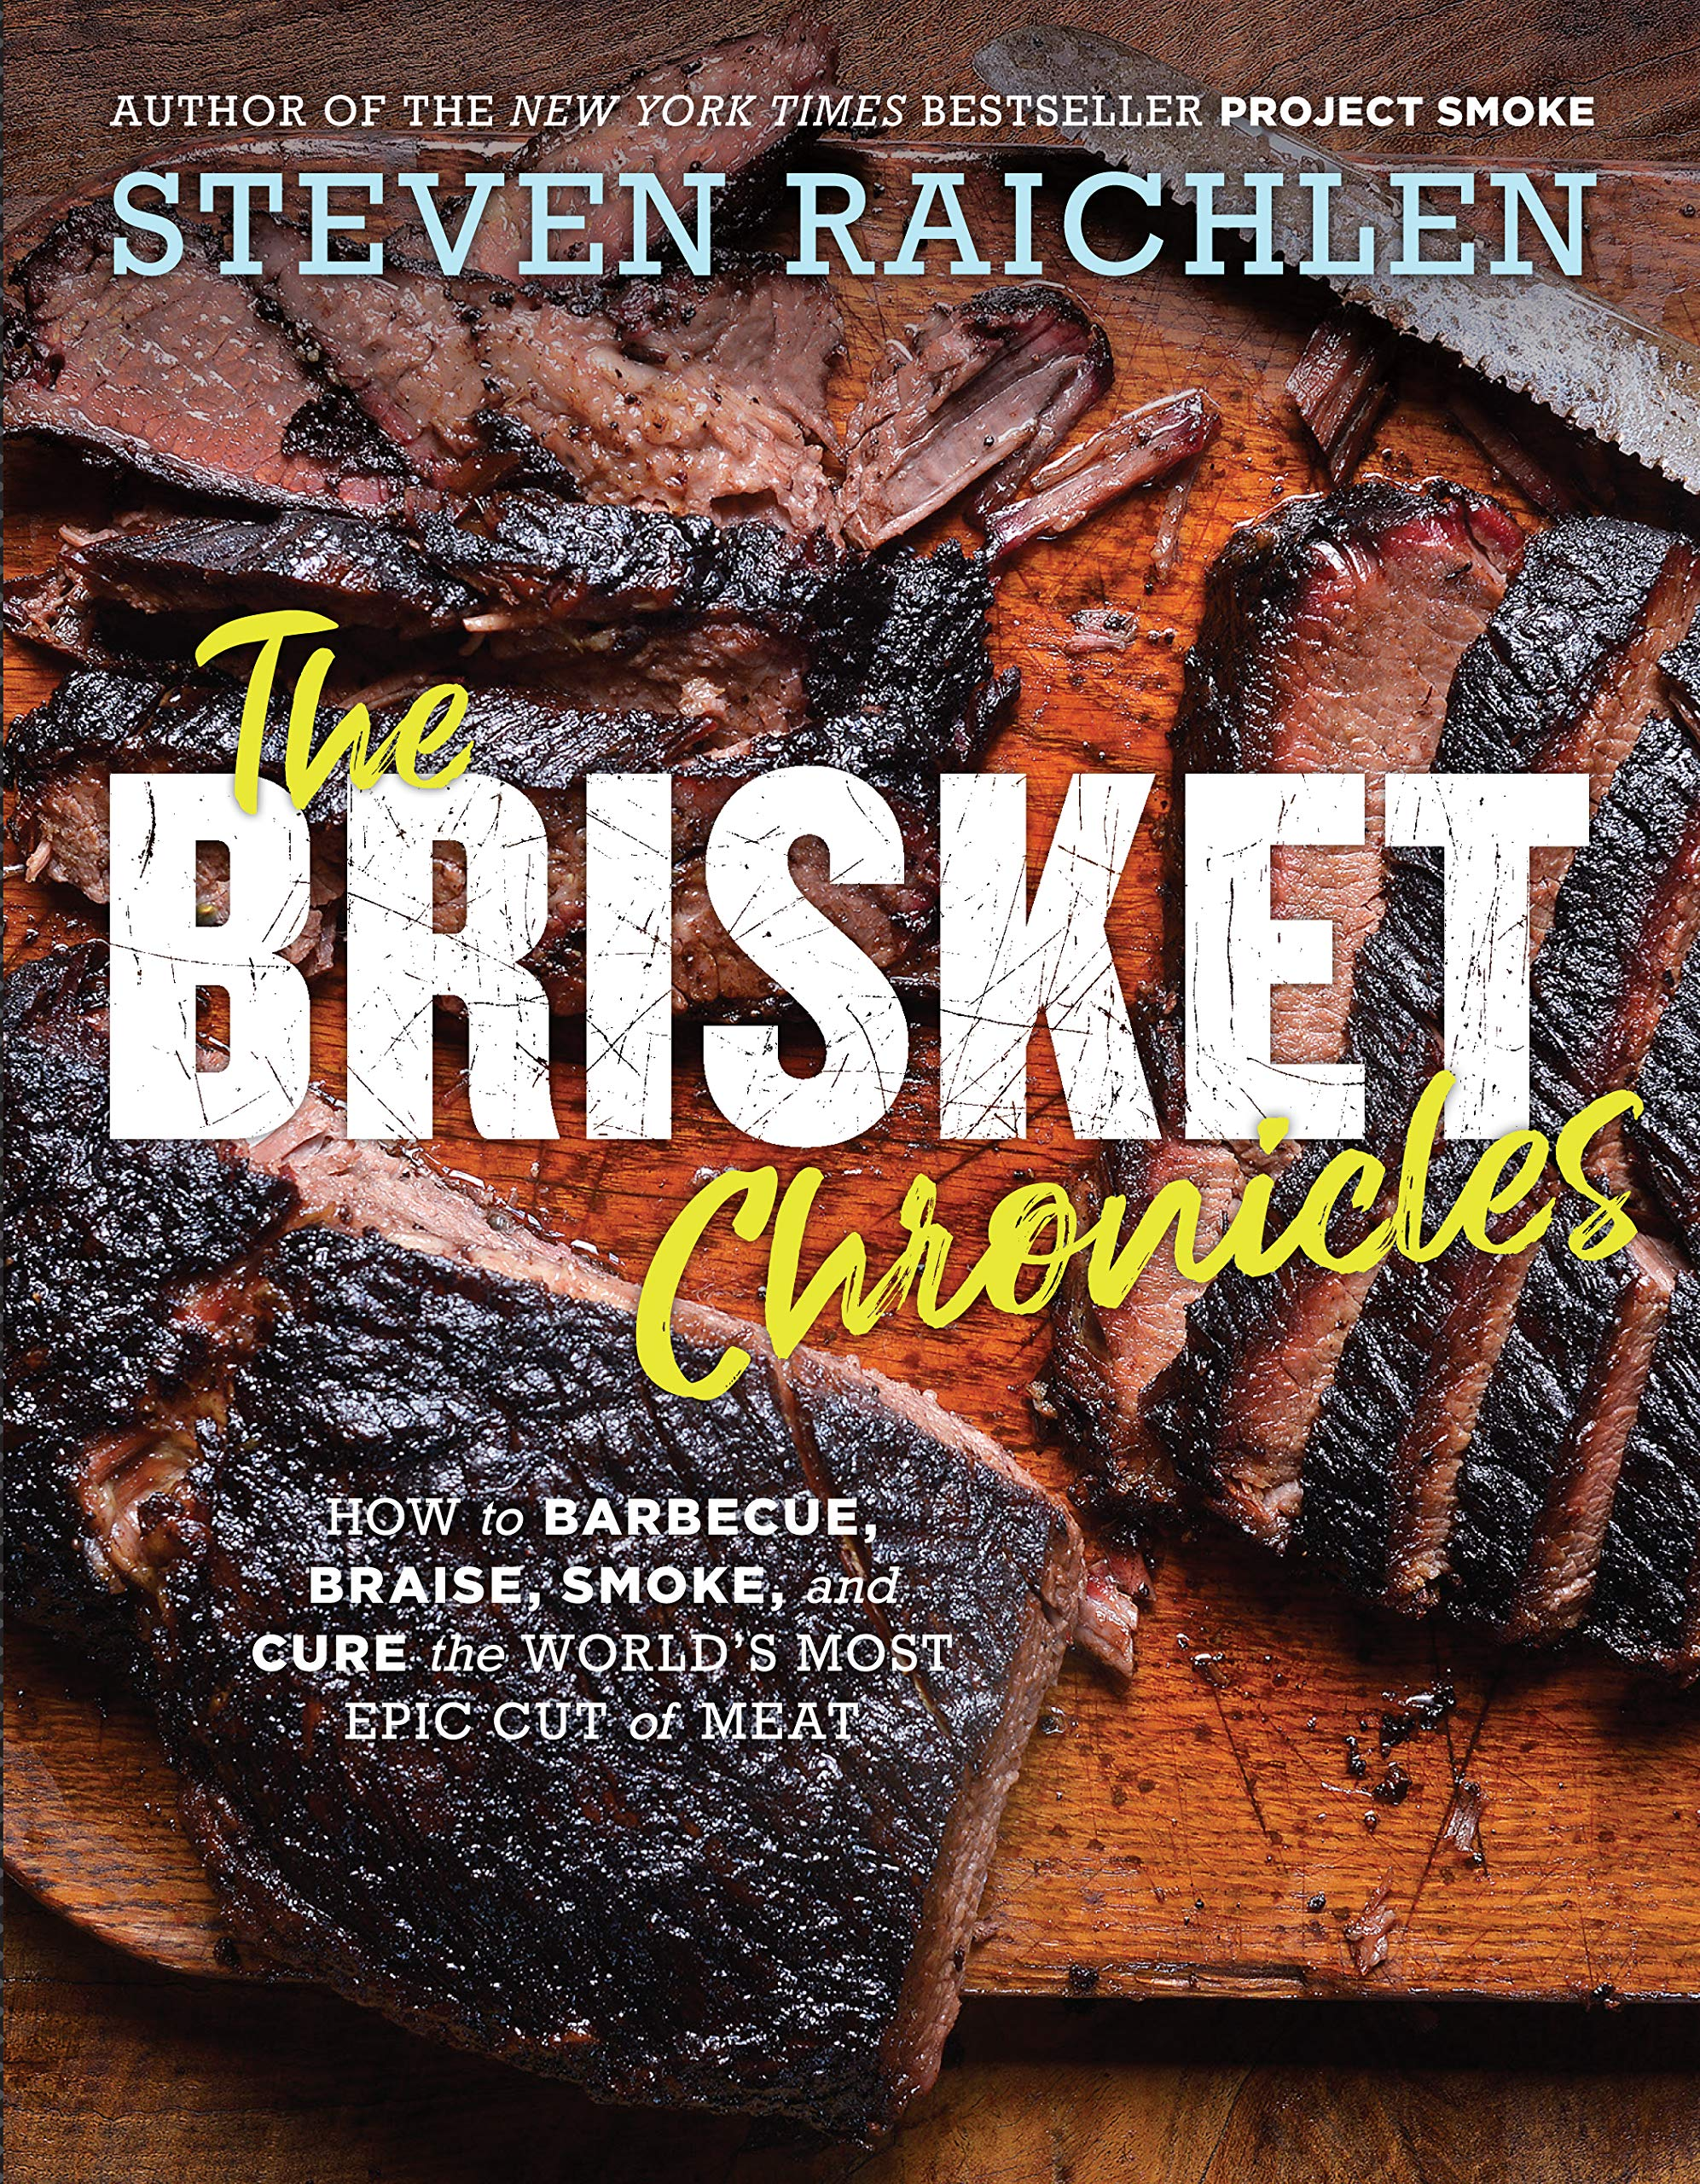 The Brisket Chronicles: How to Barbecue, Braise, Smoke, and Cure the World's Most Epic Cut of Meat by Workman Publishing Company